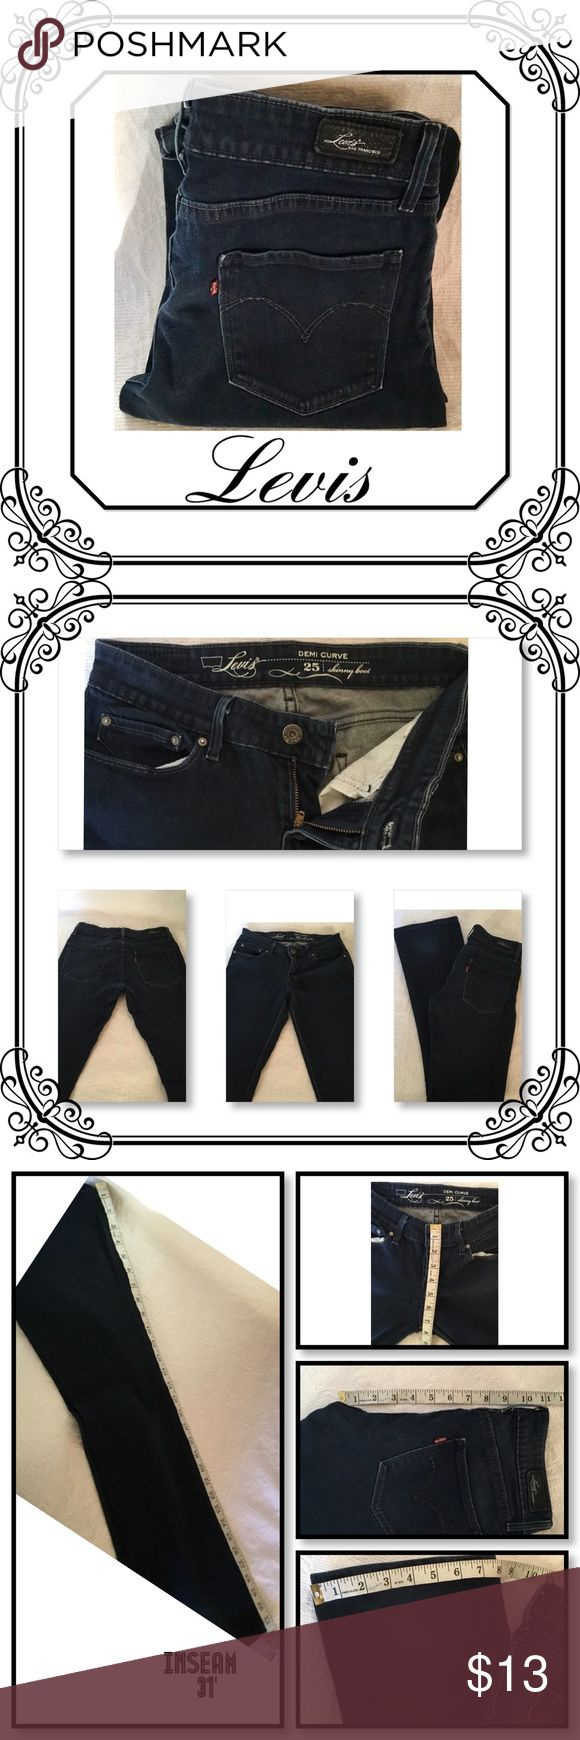 LEVIS SKINNY BOOT DARK WASH JEANS EUC //  SIZE 25 //  DEMI CURVE STYLE - SKINNY BOOT // SEE PIC FOR MEASUREMENTS. PRICE FIRM UNLESS BUNDLE//  No stains or rips// pet & smoke free home Levi's Jeans Skinny